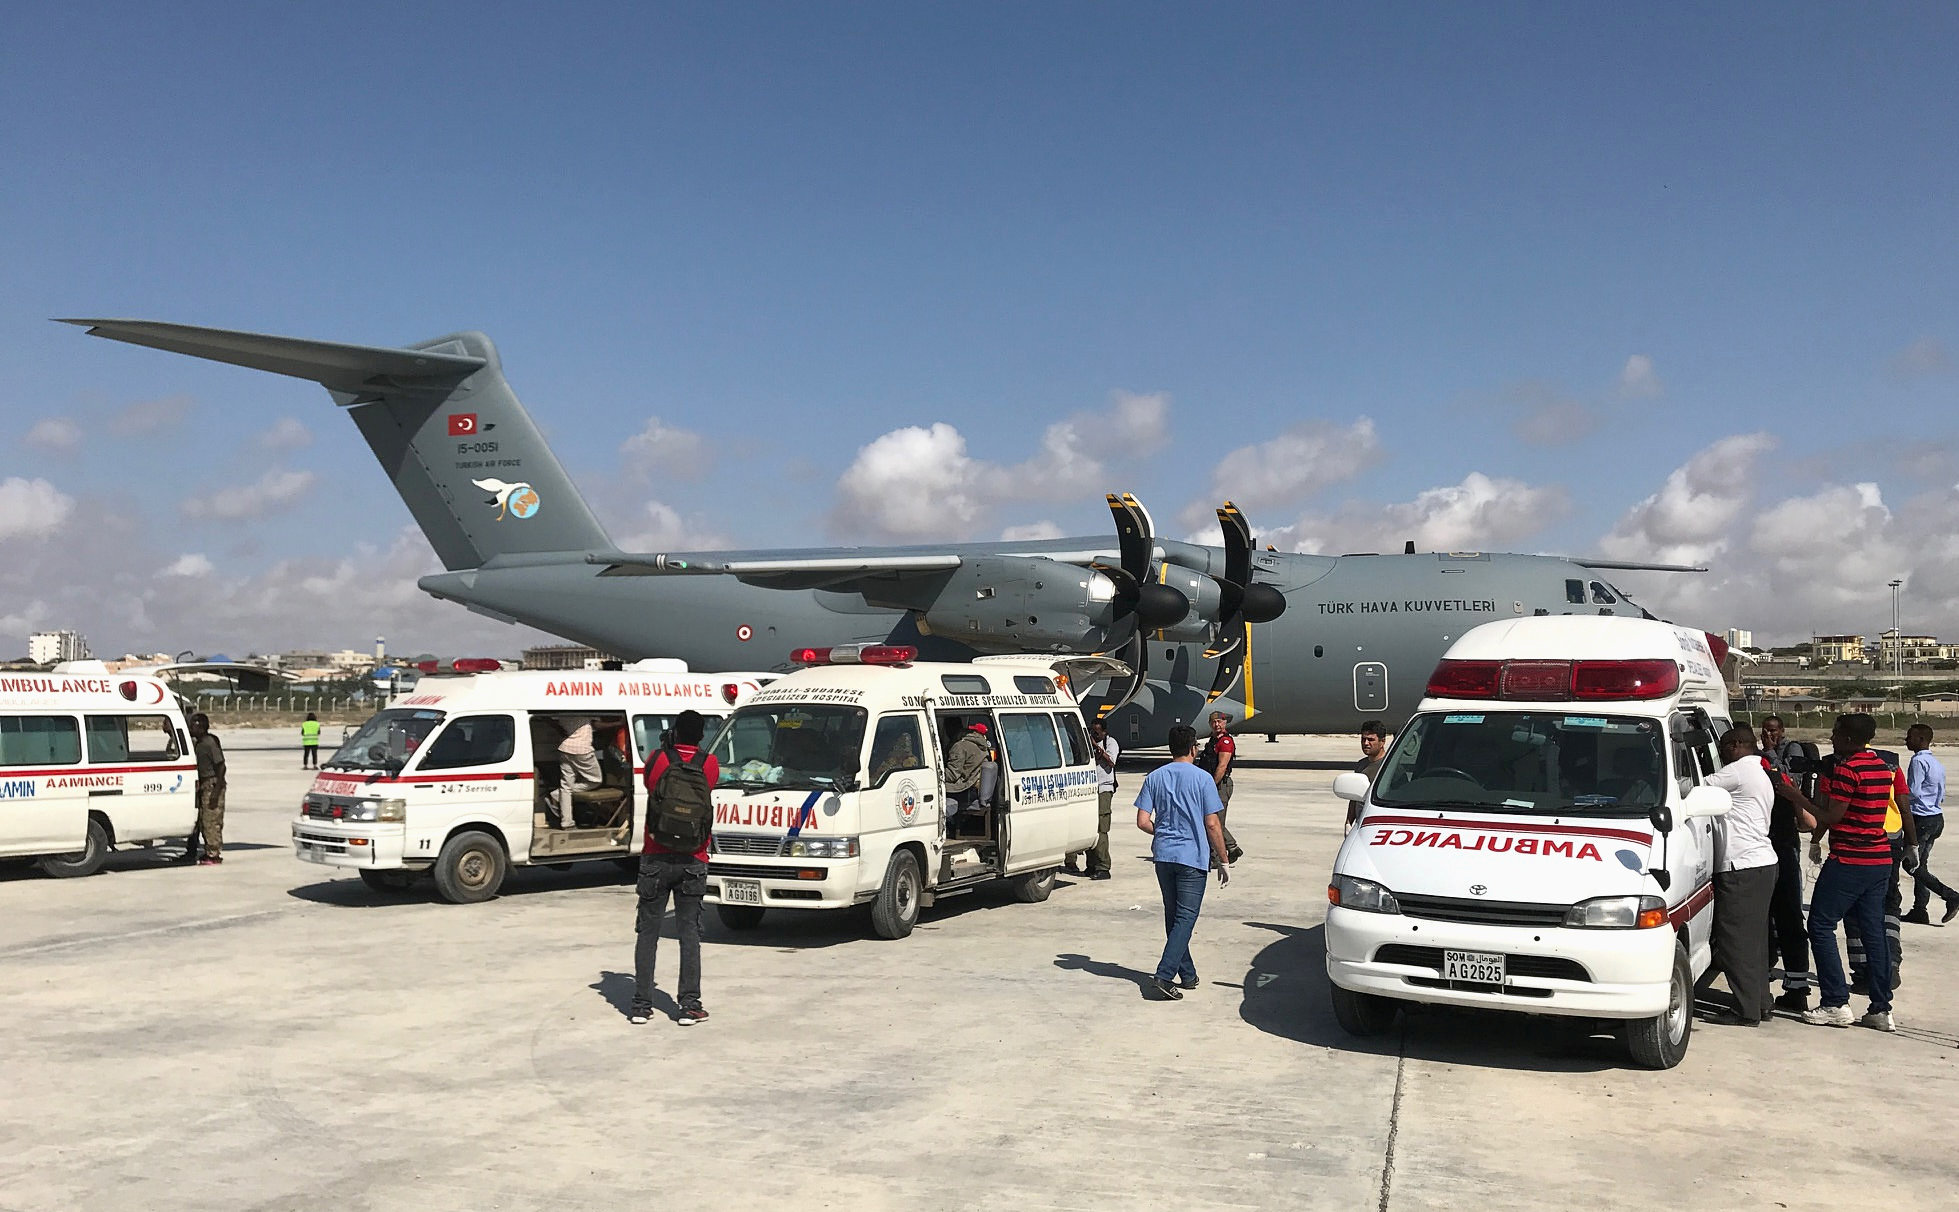 Somalia appeals for blood donations, medical assistance after truck bombing